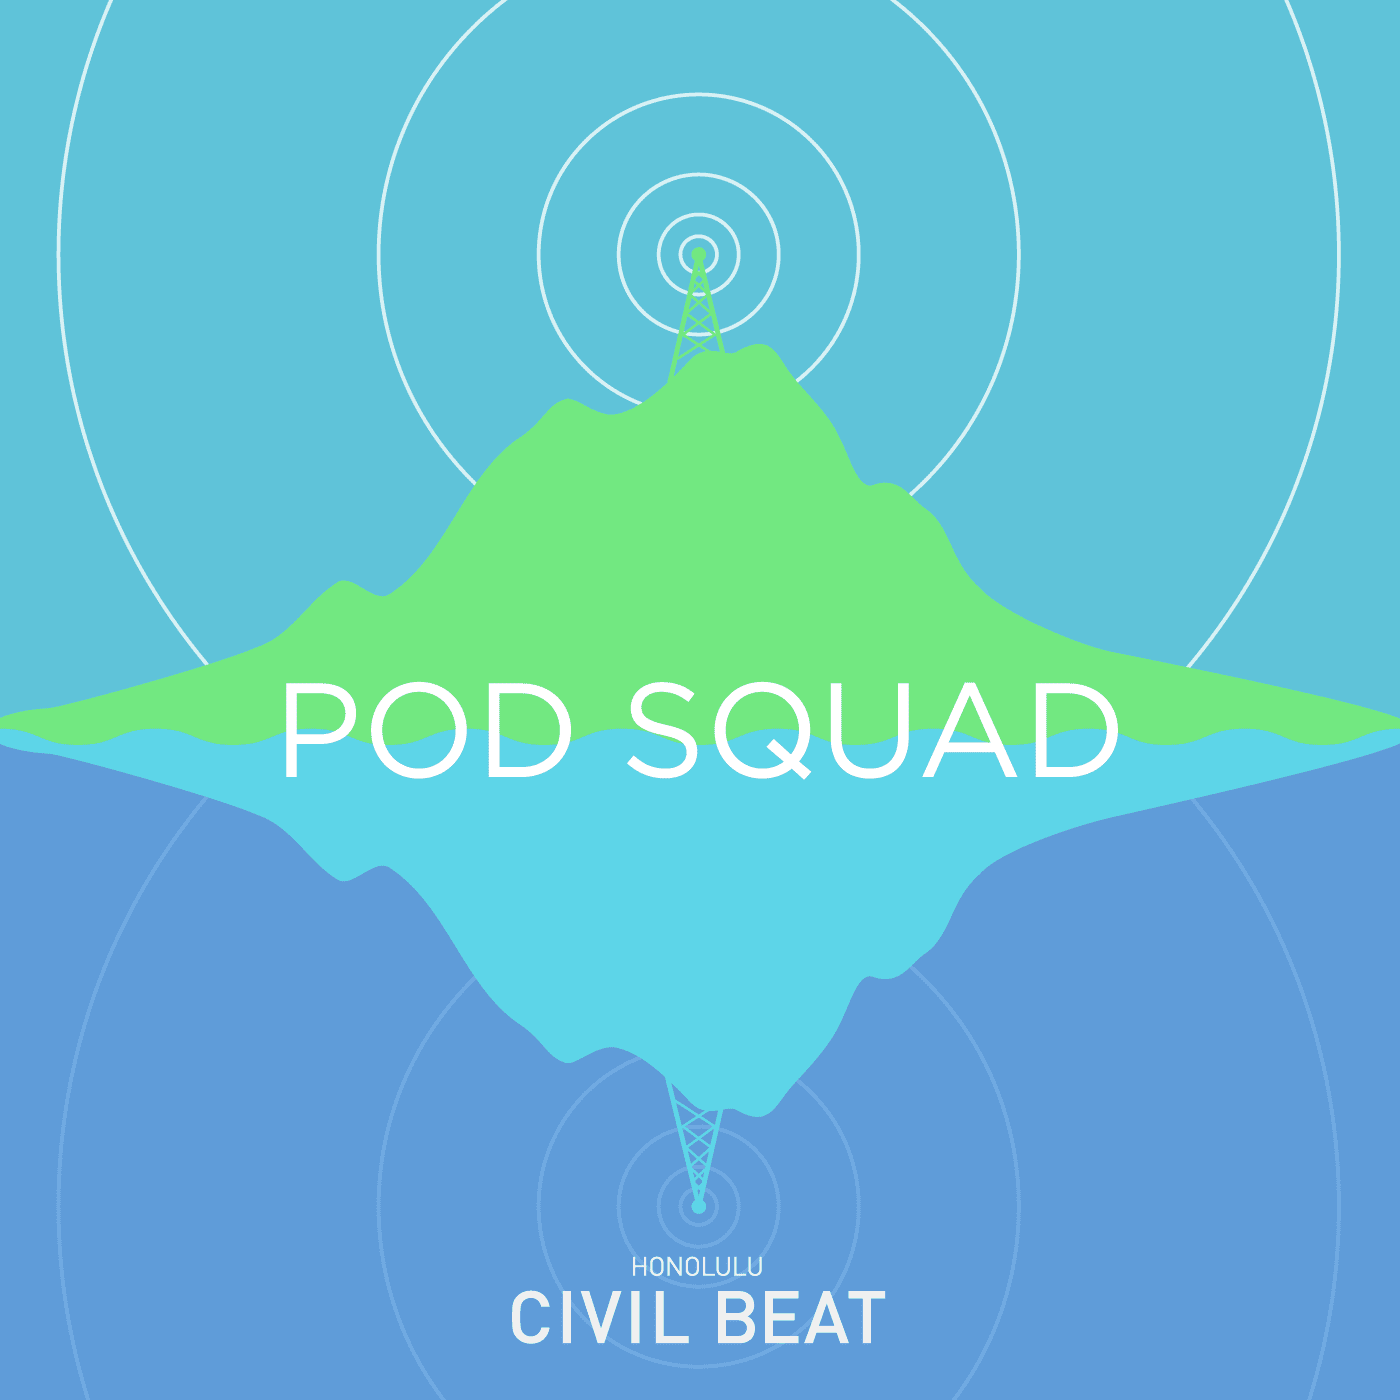 Pod Squad Transcript: Unveiling A New Civil Beat Podcasting Project